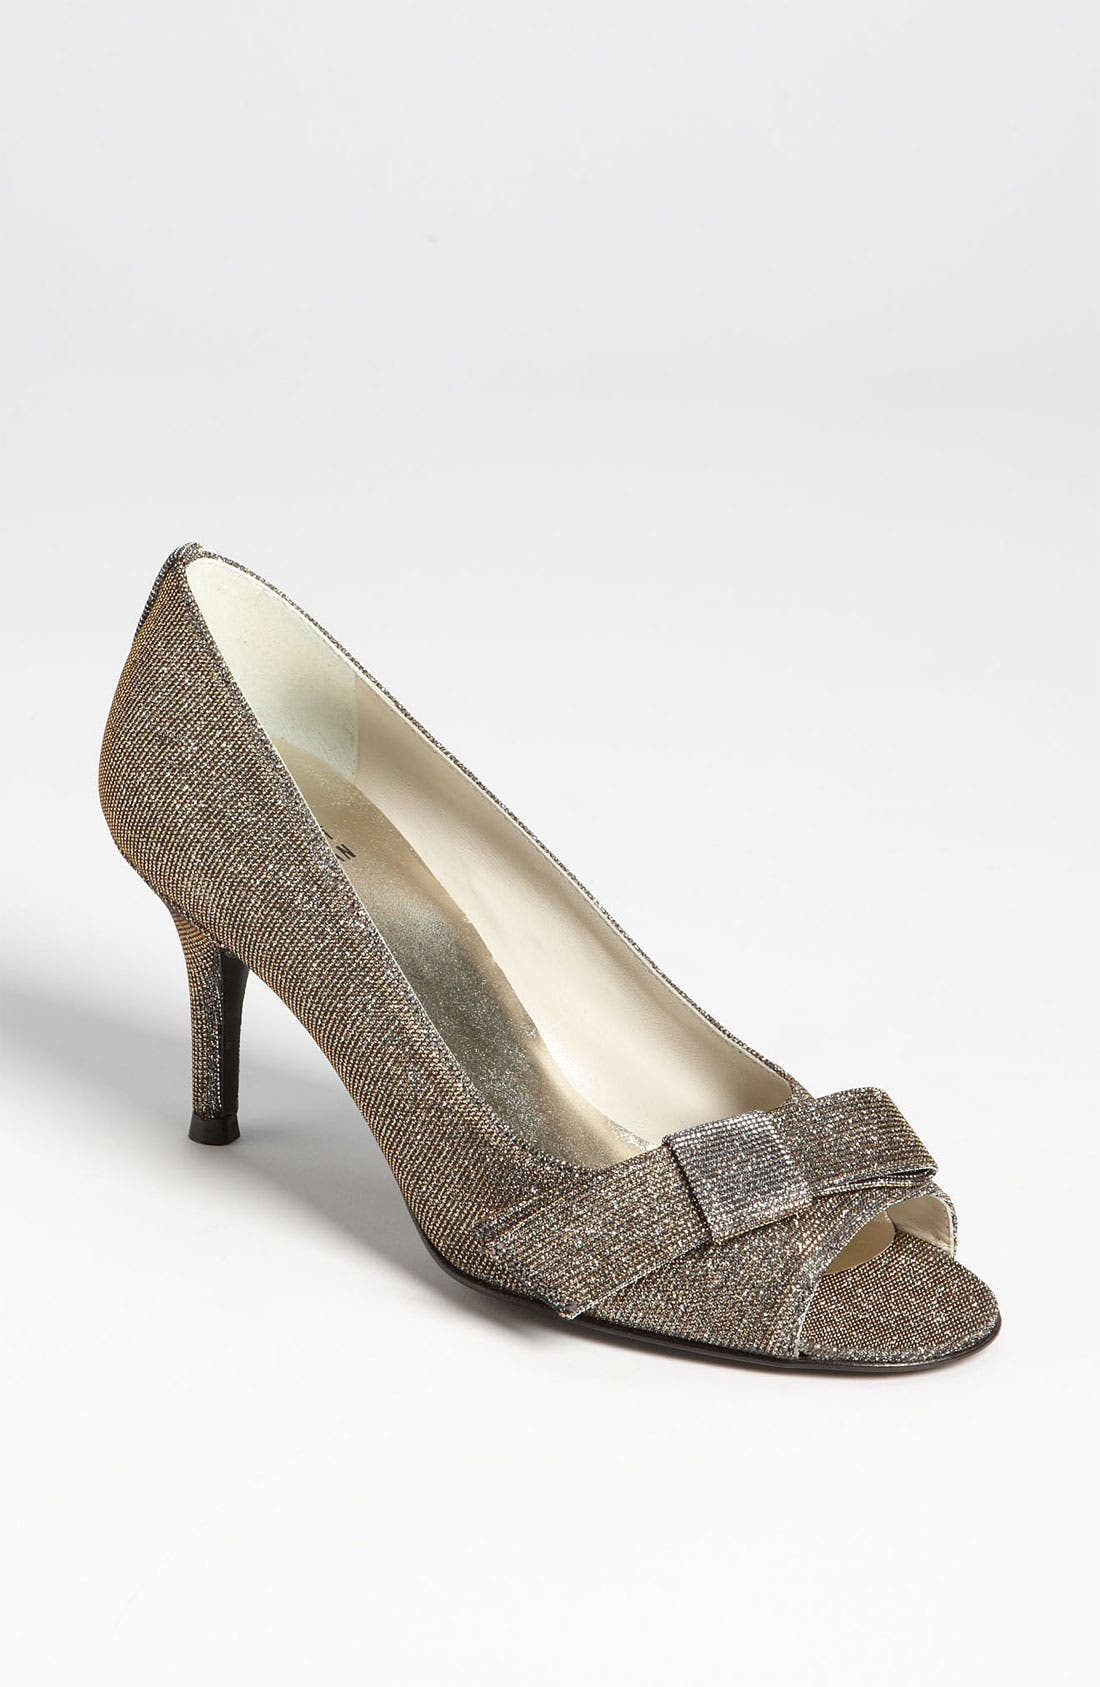 Alternate Image 1 Selected - Stuart Weitzman 'Bowover' Pump